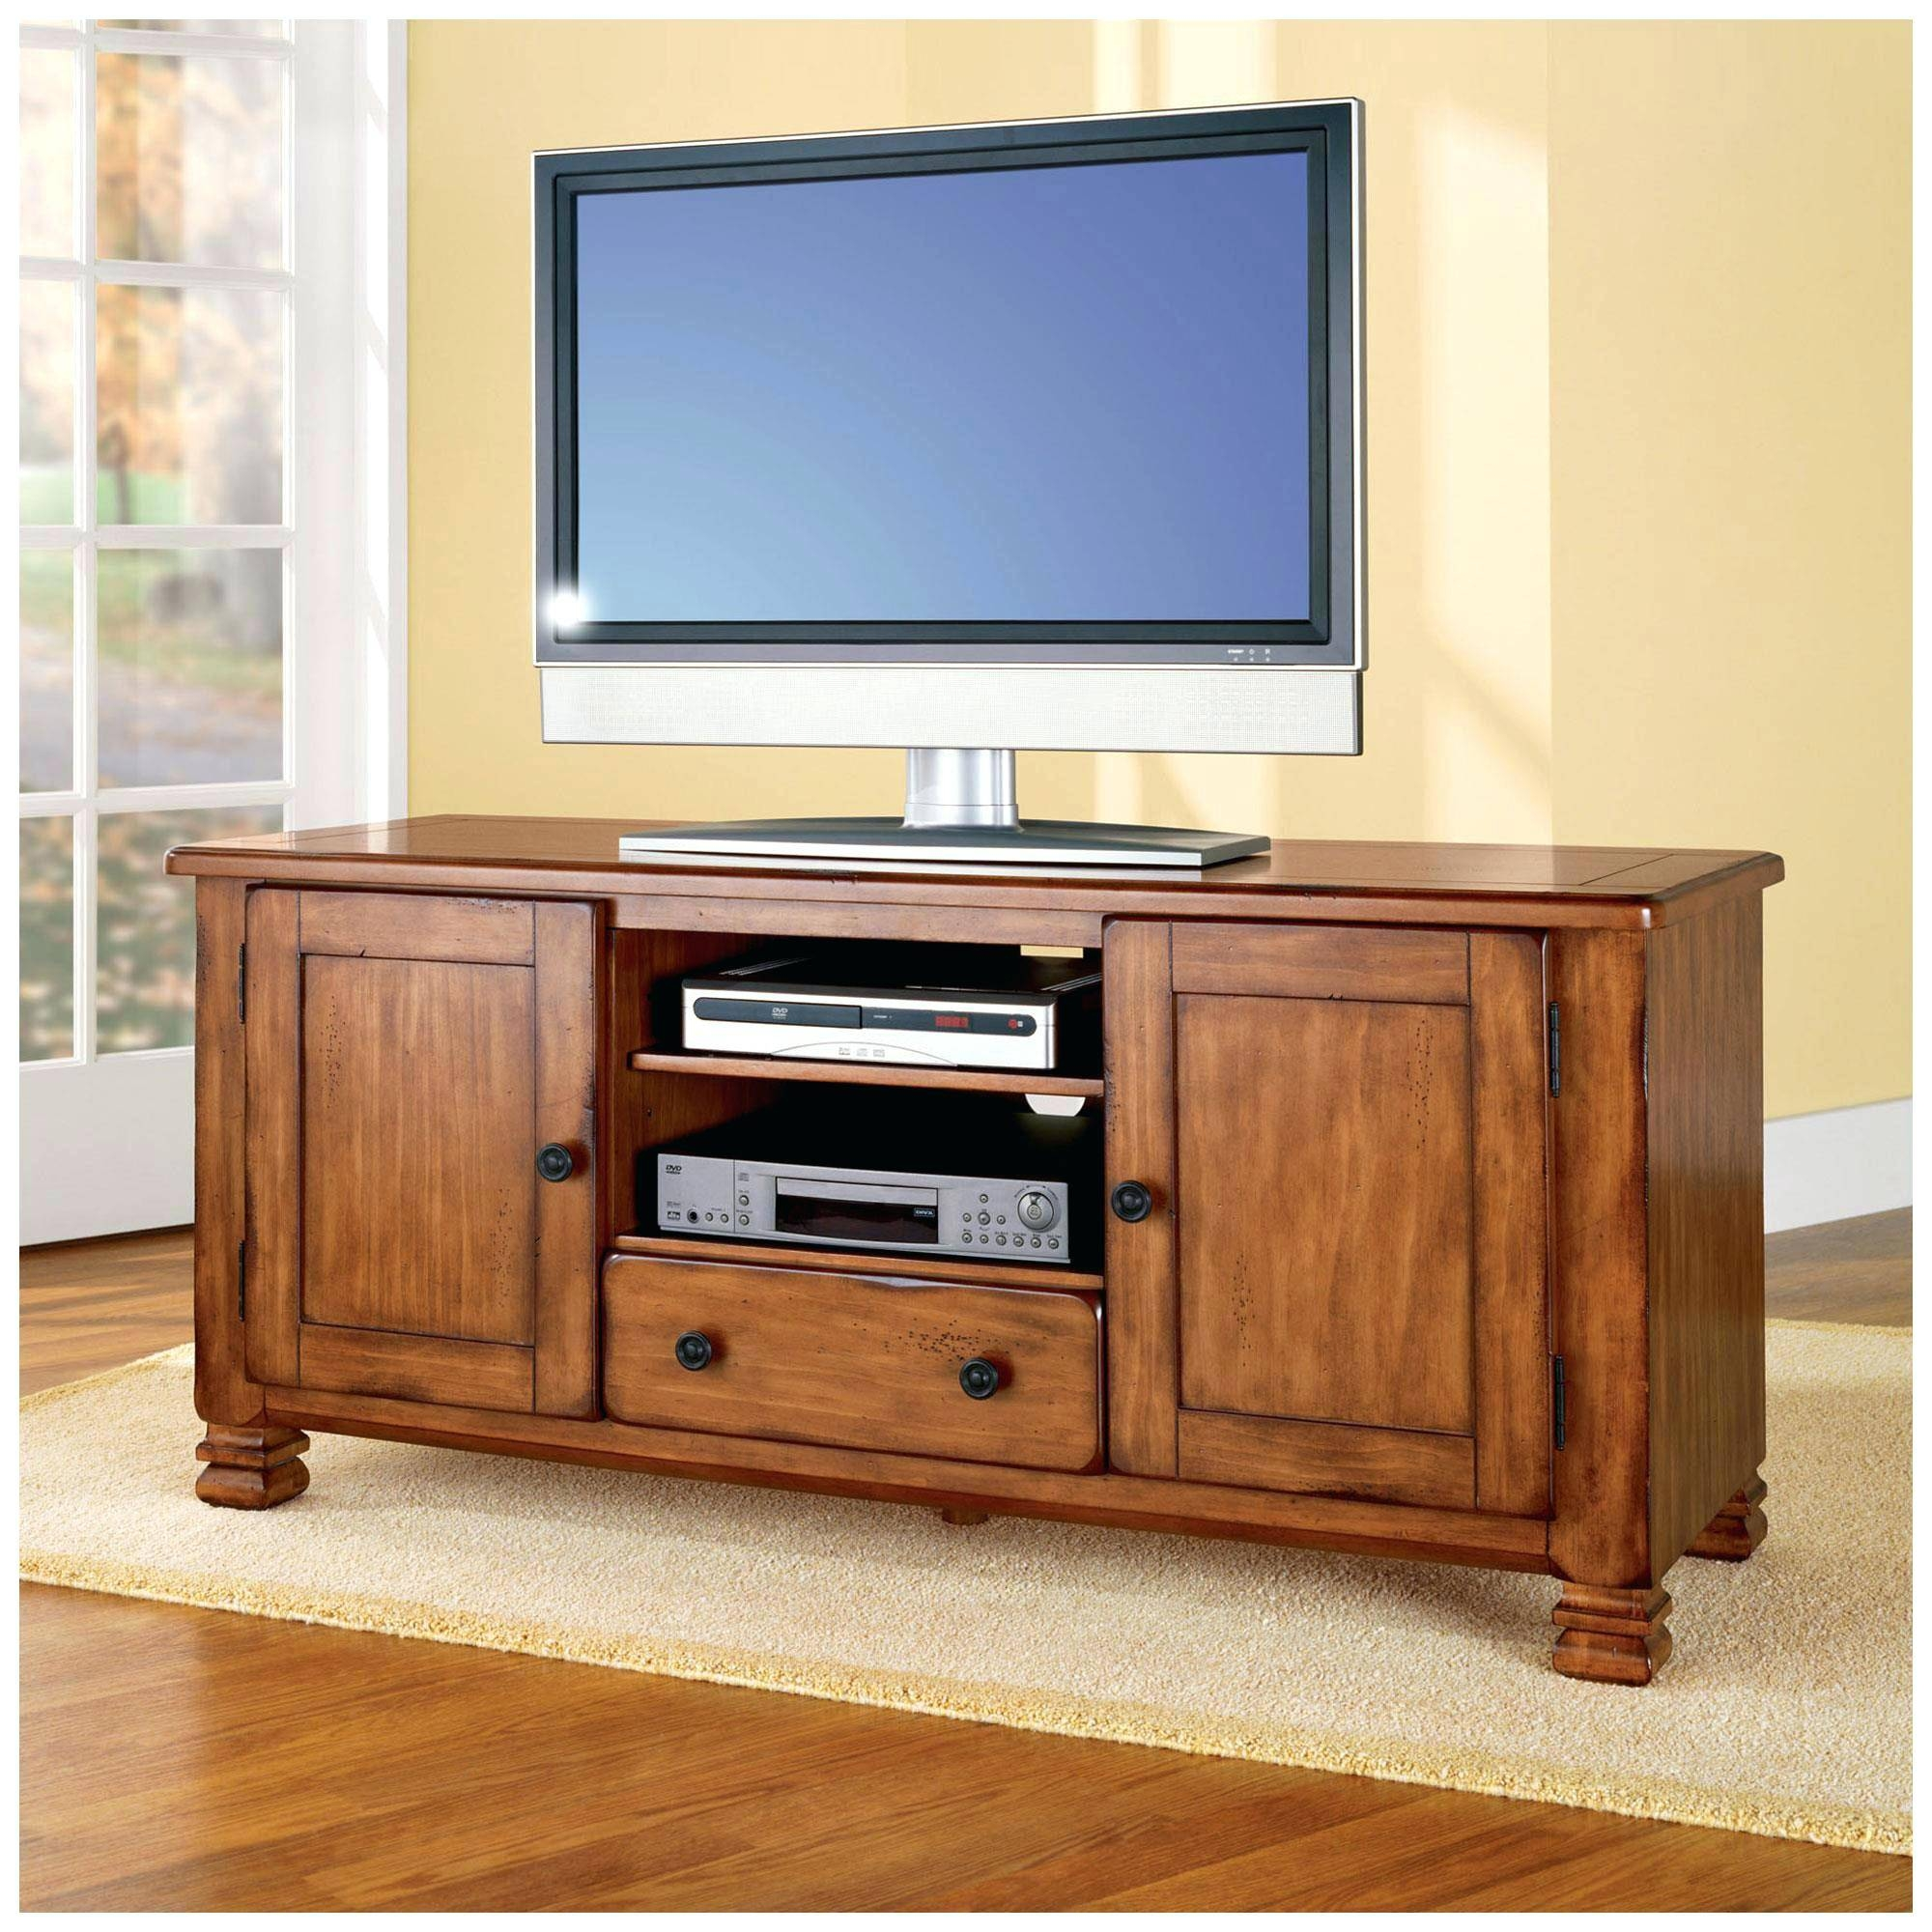 Tv Stand : 122 Stupendous Oak Corner Tv Stand With Fireplace pertaining to Oak Tv Stands For Flat Screens (Image 10 of 15)